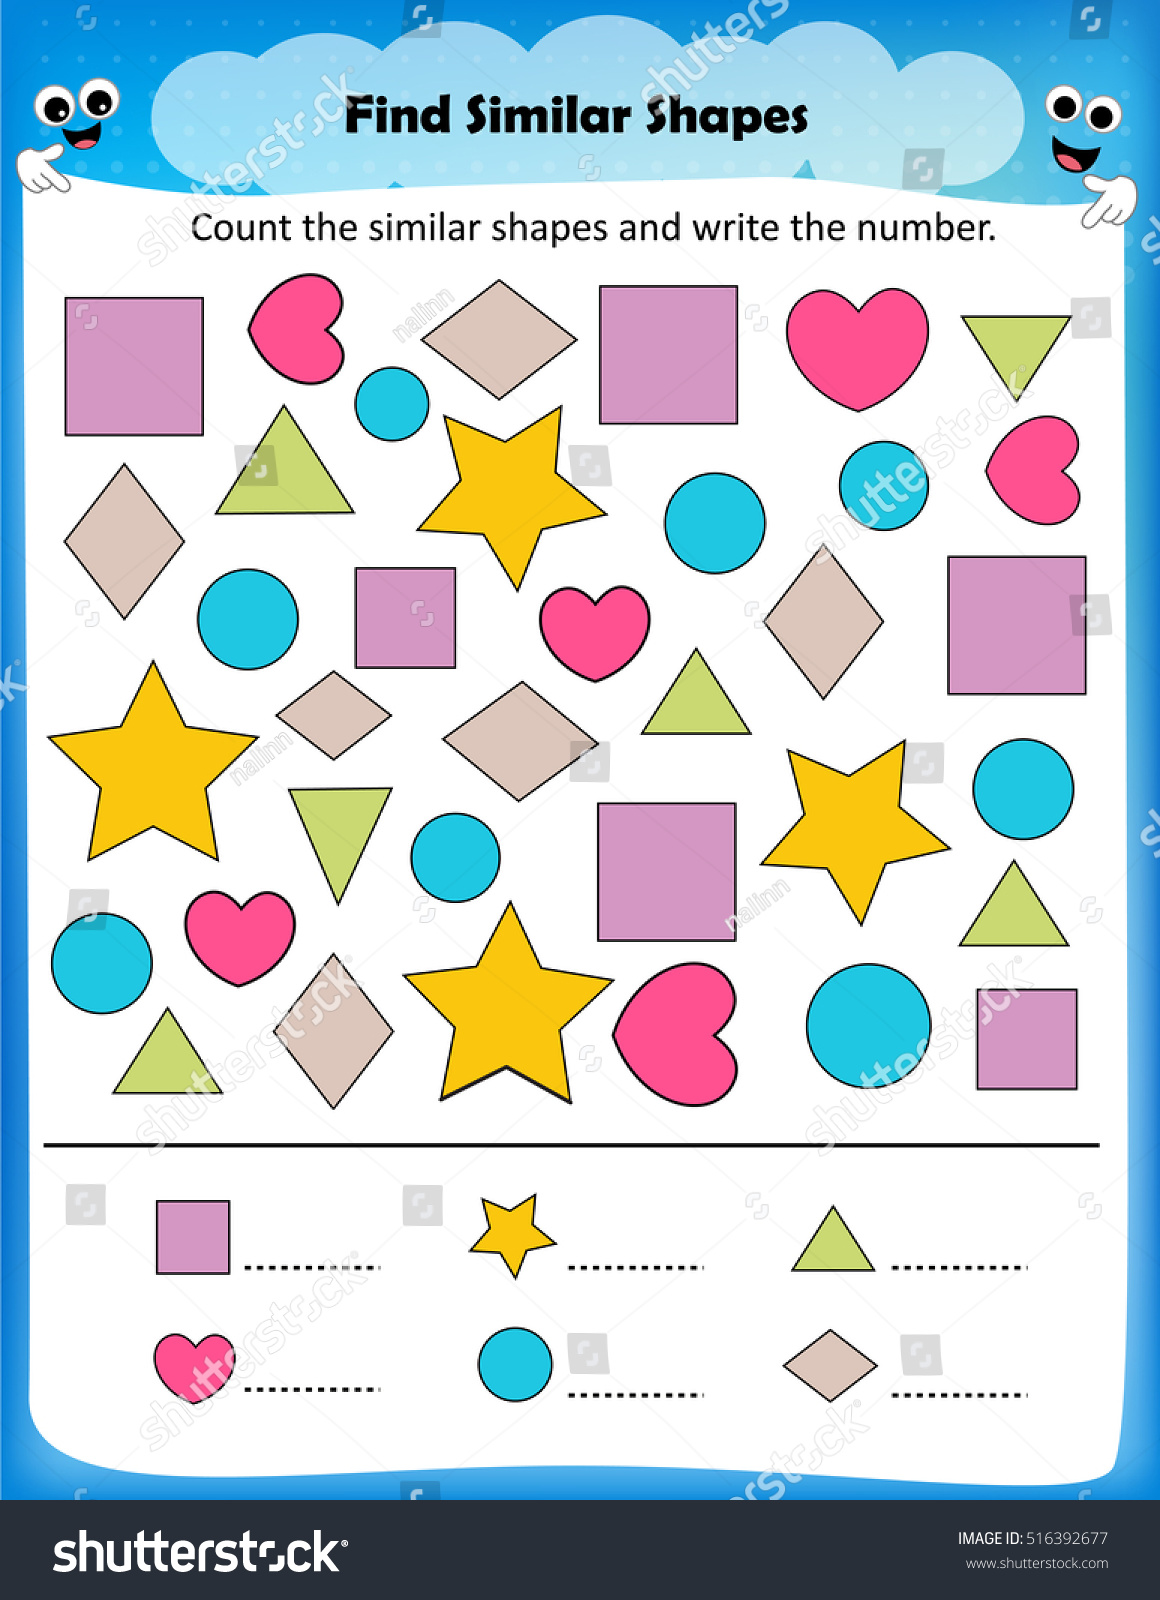 Worksheet Count Similar Shapes Worksheet Preschool Stock Vector